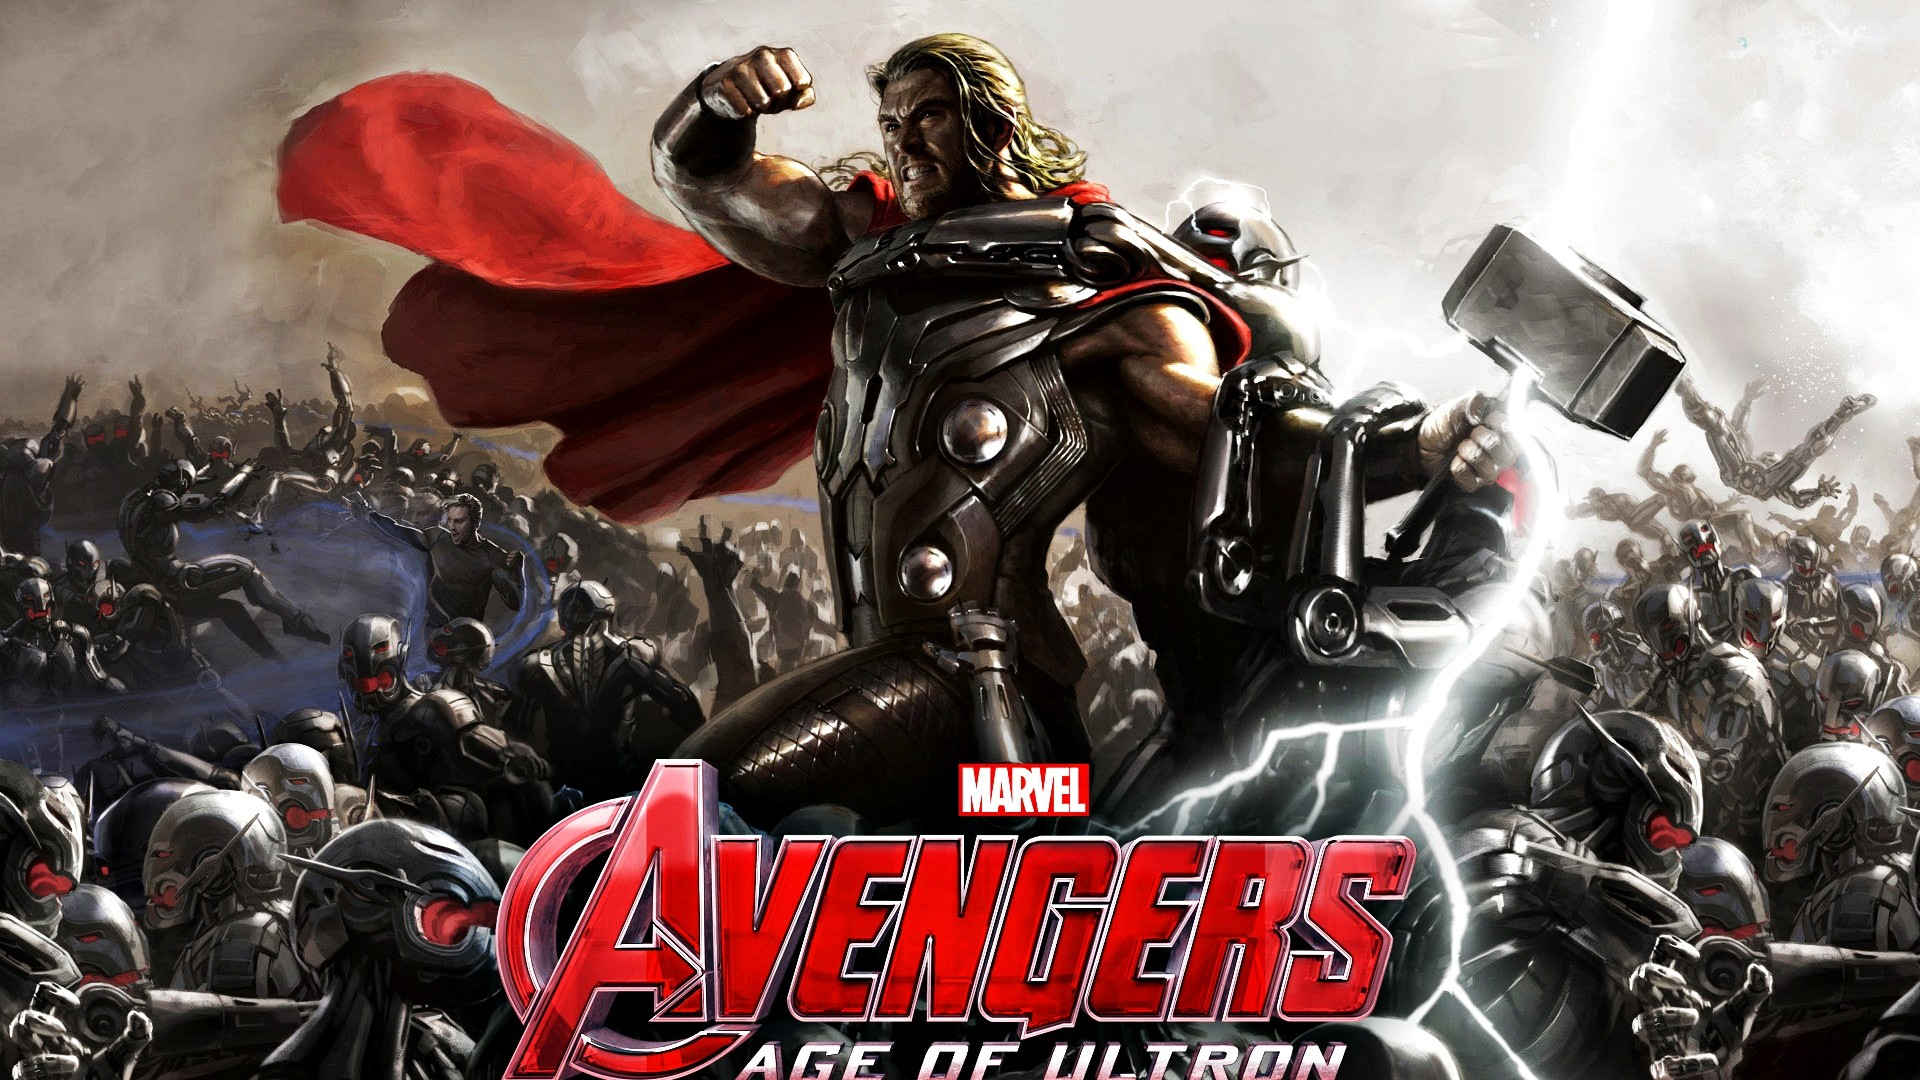 Thor in Avengers 2 Age of Ultron Widescreen and Full HD Wallpapers 1920x1080